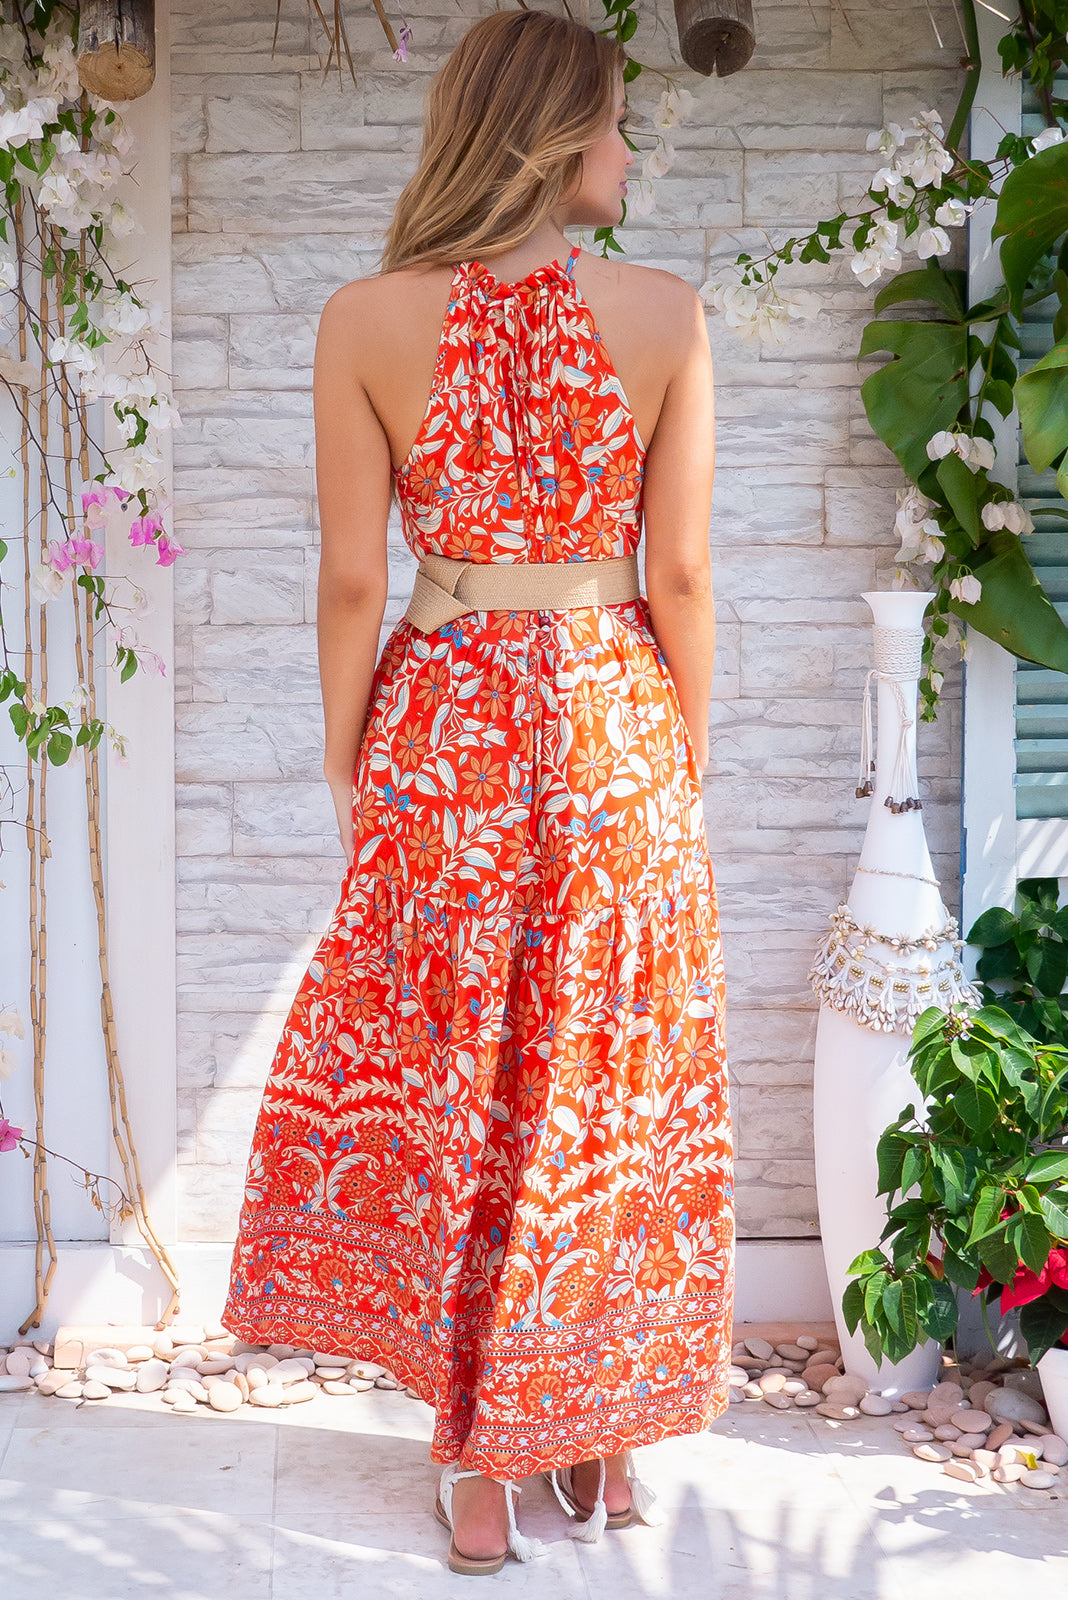 Noosa Red Gems Maxi Dress, bohemian summers style, 100% rayon, halter neck, adjustable string neckline, tiered skirt, side pockets, bright red base with large multicoloured floral print featuring white, peach and blue, bohemian-style rattan waist belt included.